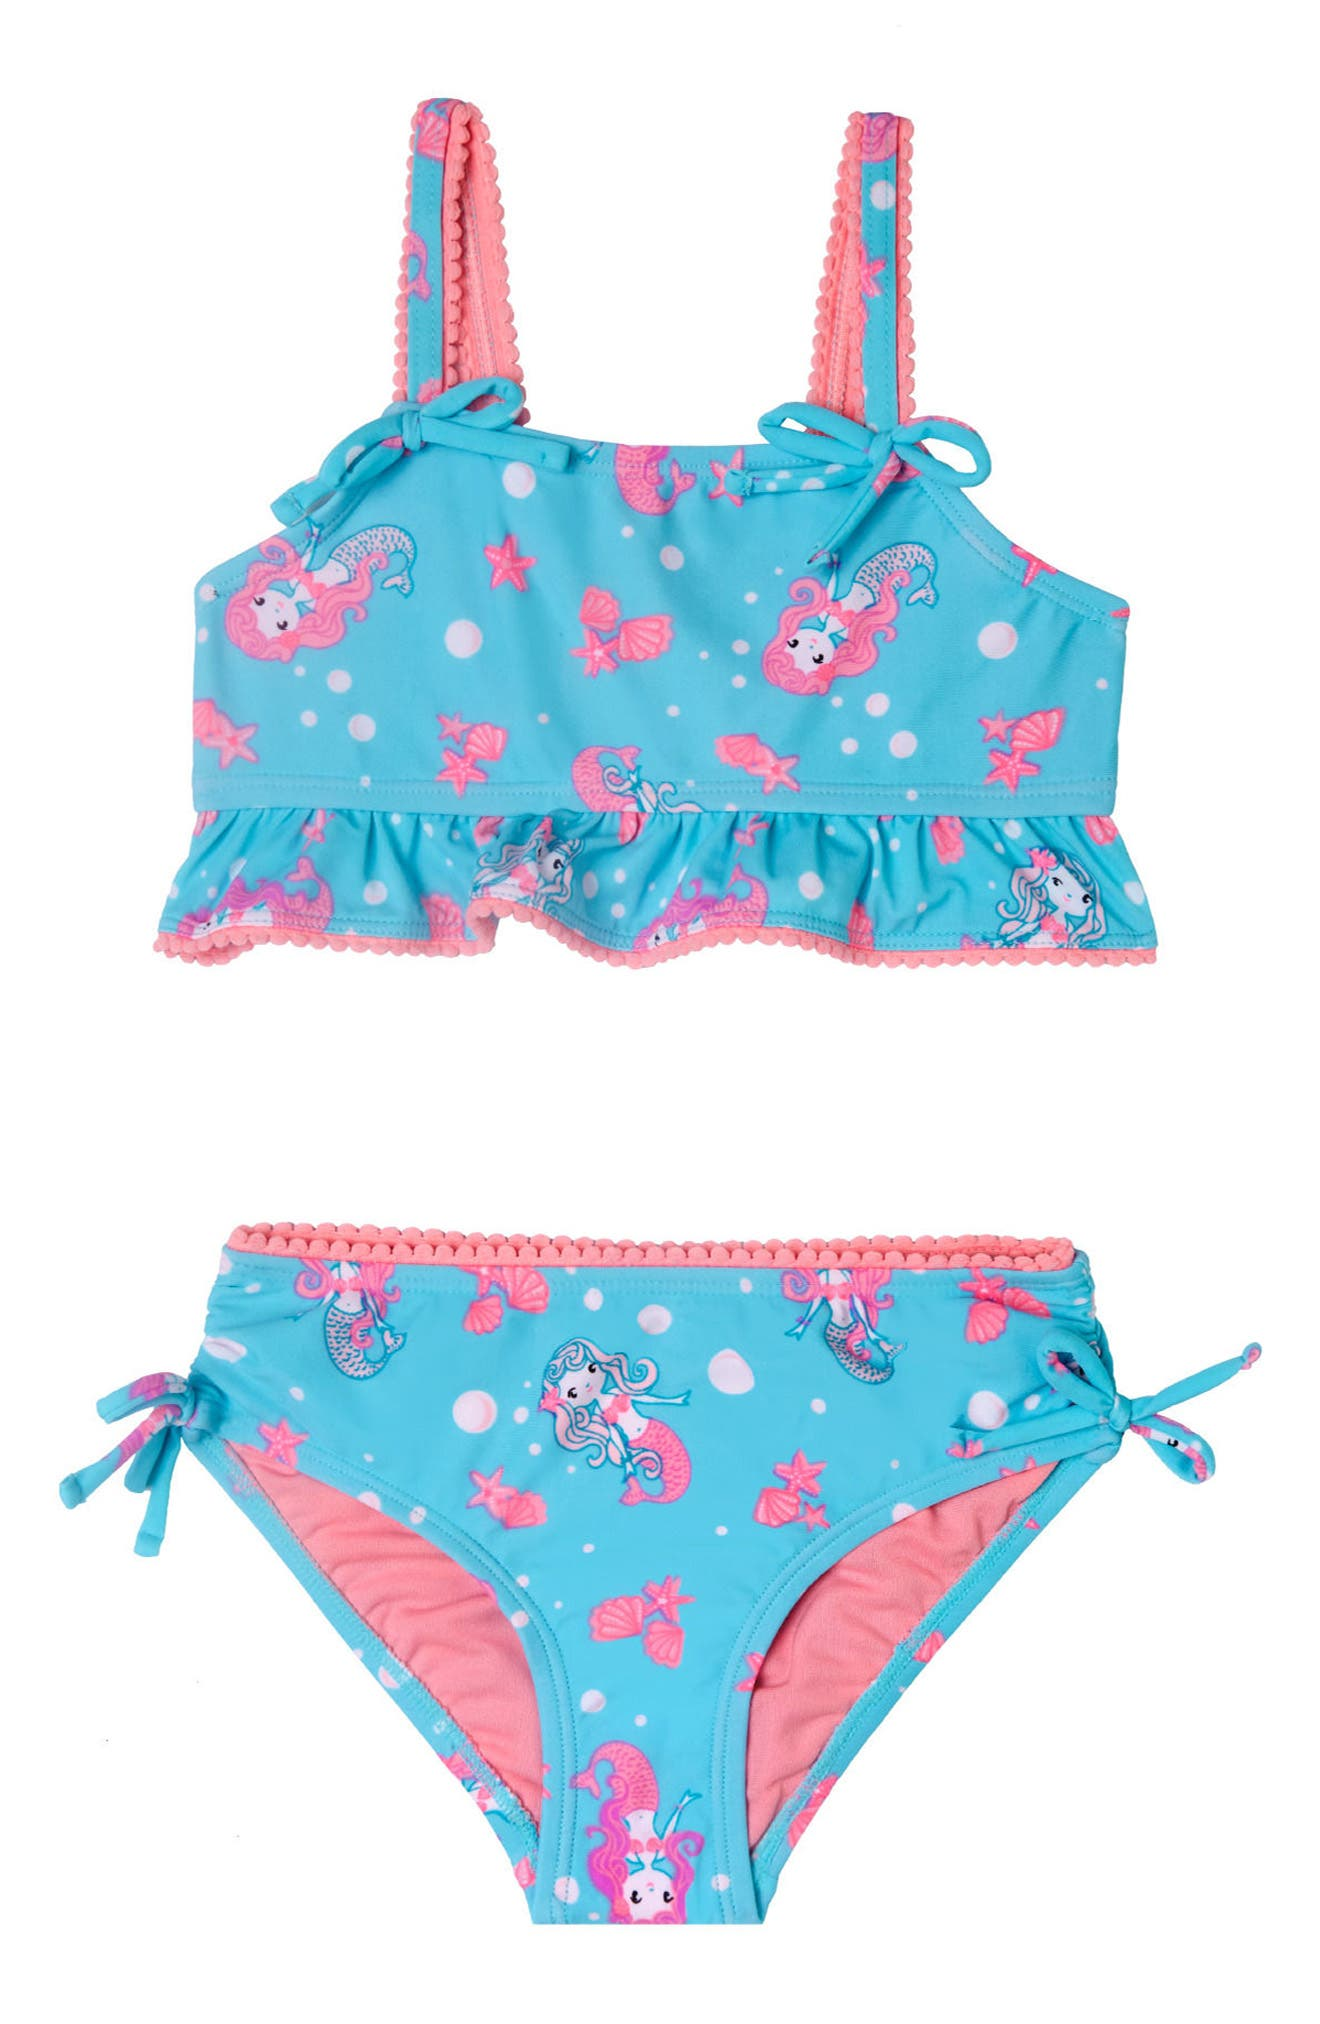 Mermaid Crush Two-Piece Swimsuit,                         Main,                         color, 405